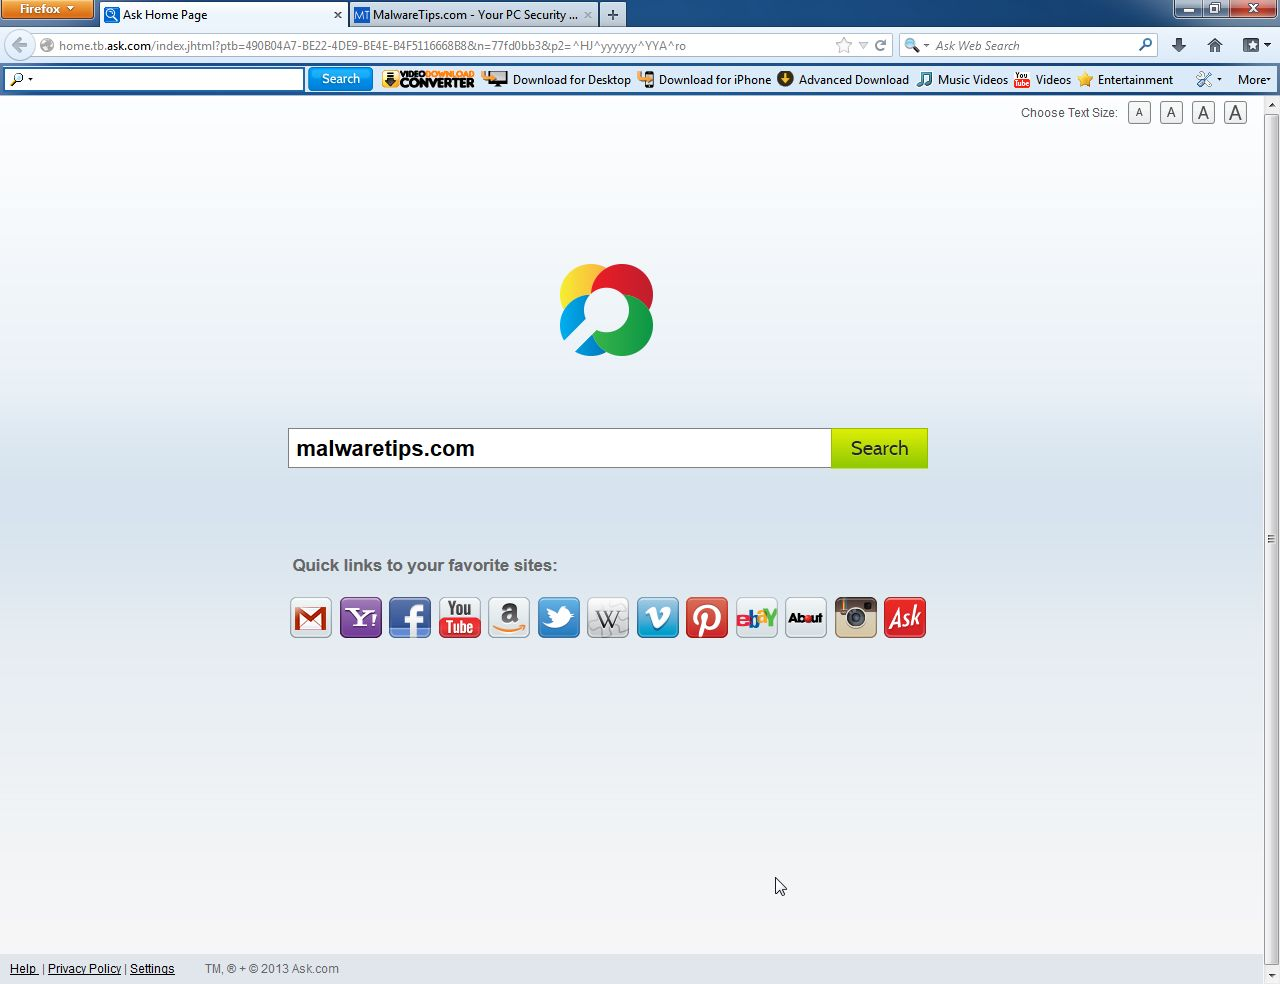 [Image: Video Download Converter Toolbar]